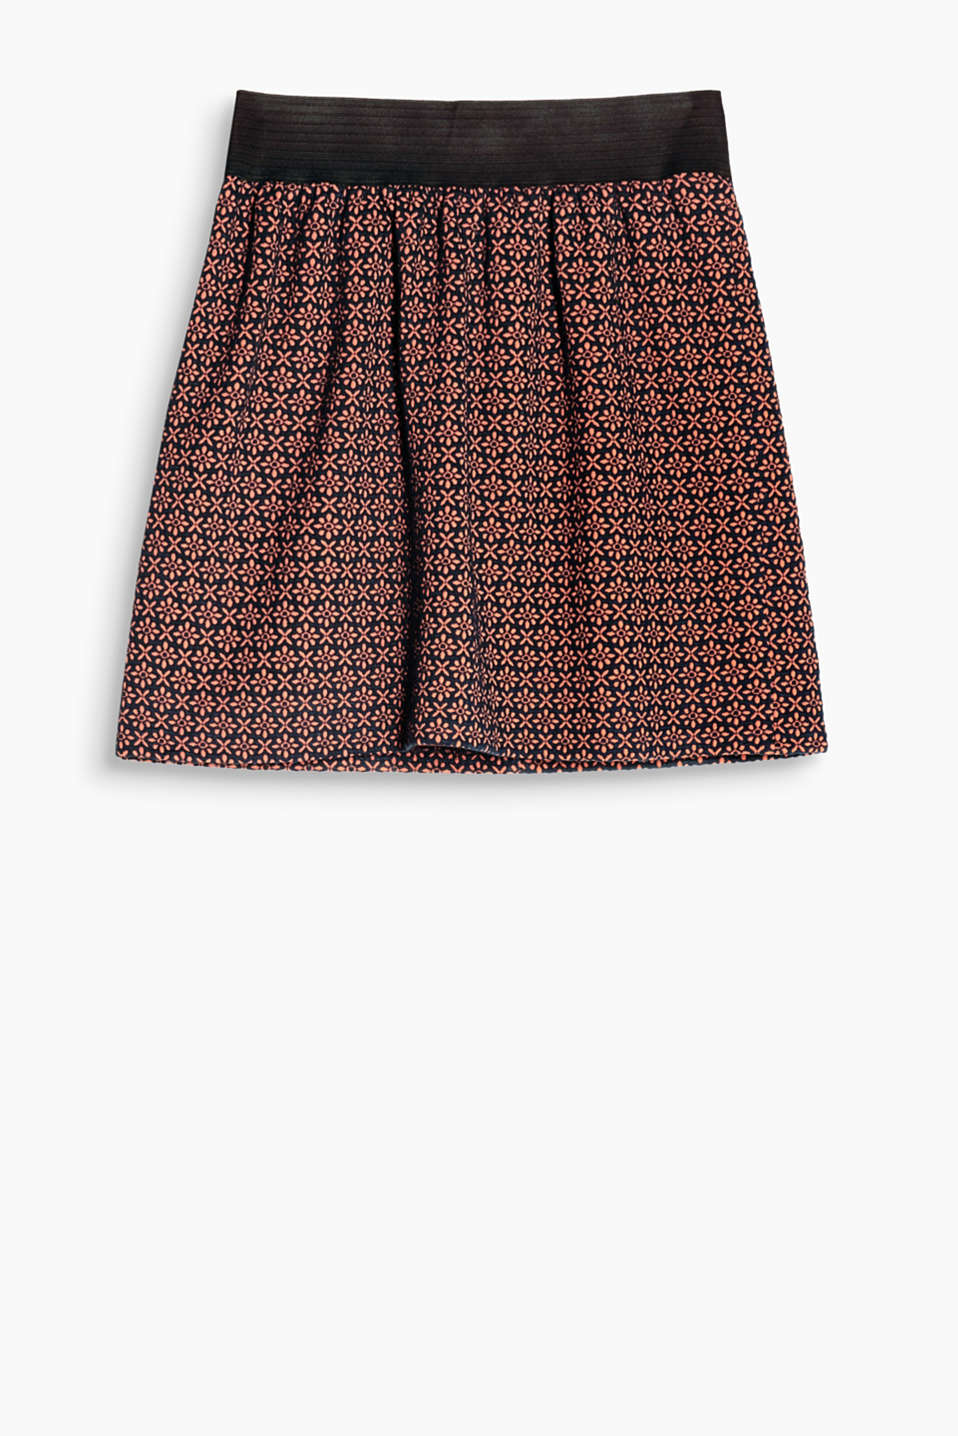 Slightly flared stretch skirt in comfortable jersey with a pretty jacquard pattern and a wide, elasticated waistband